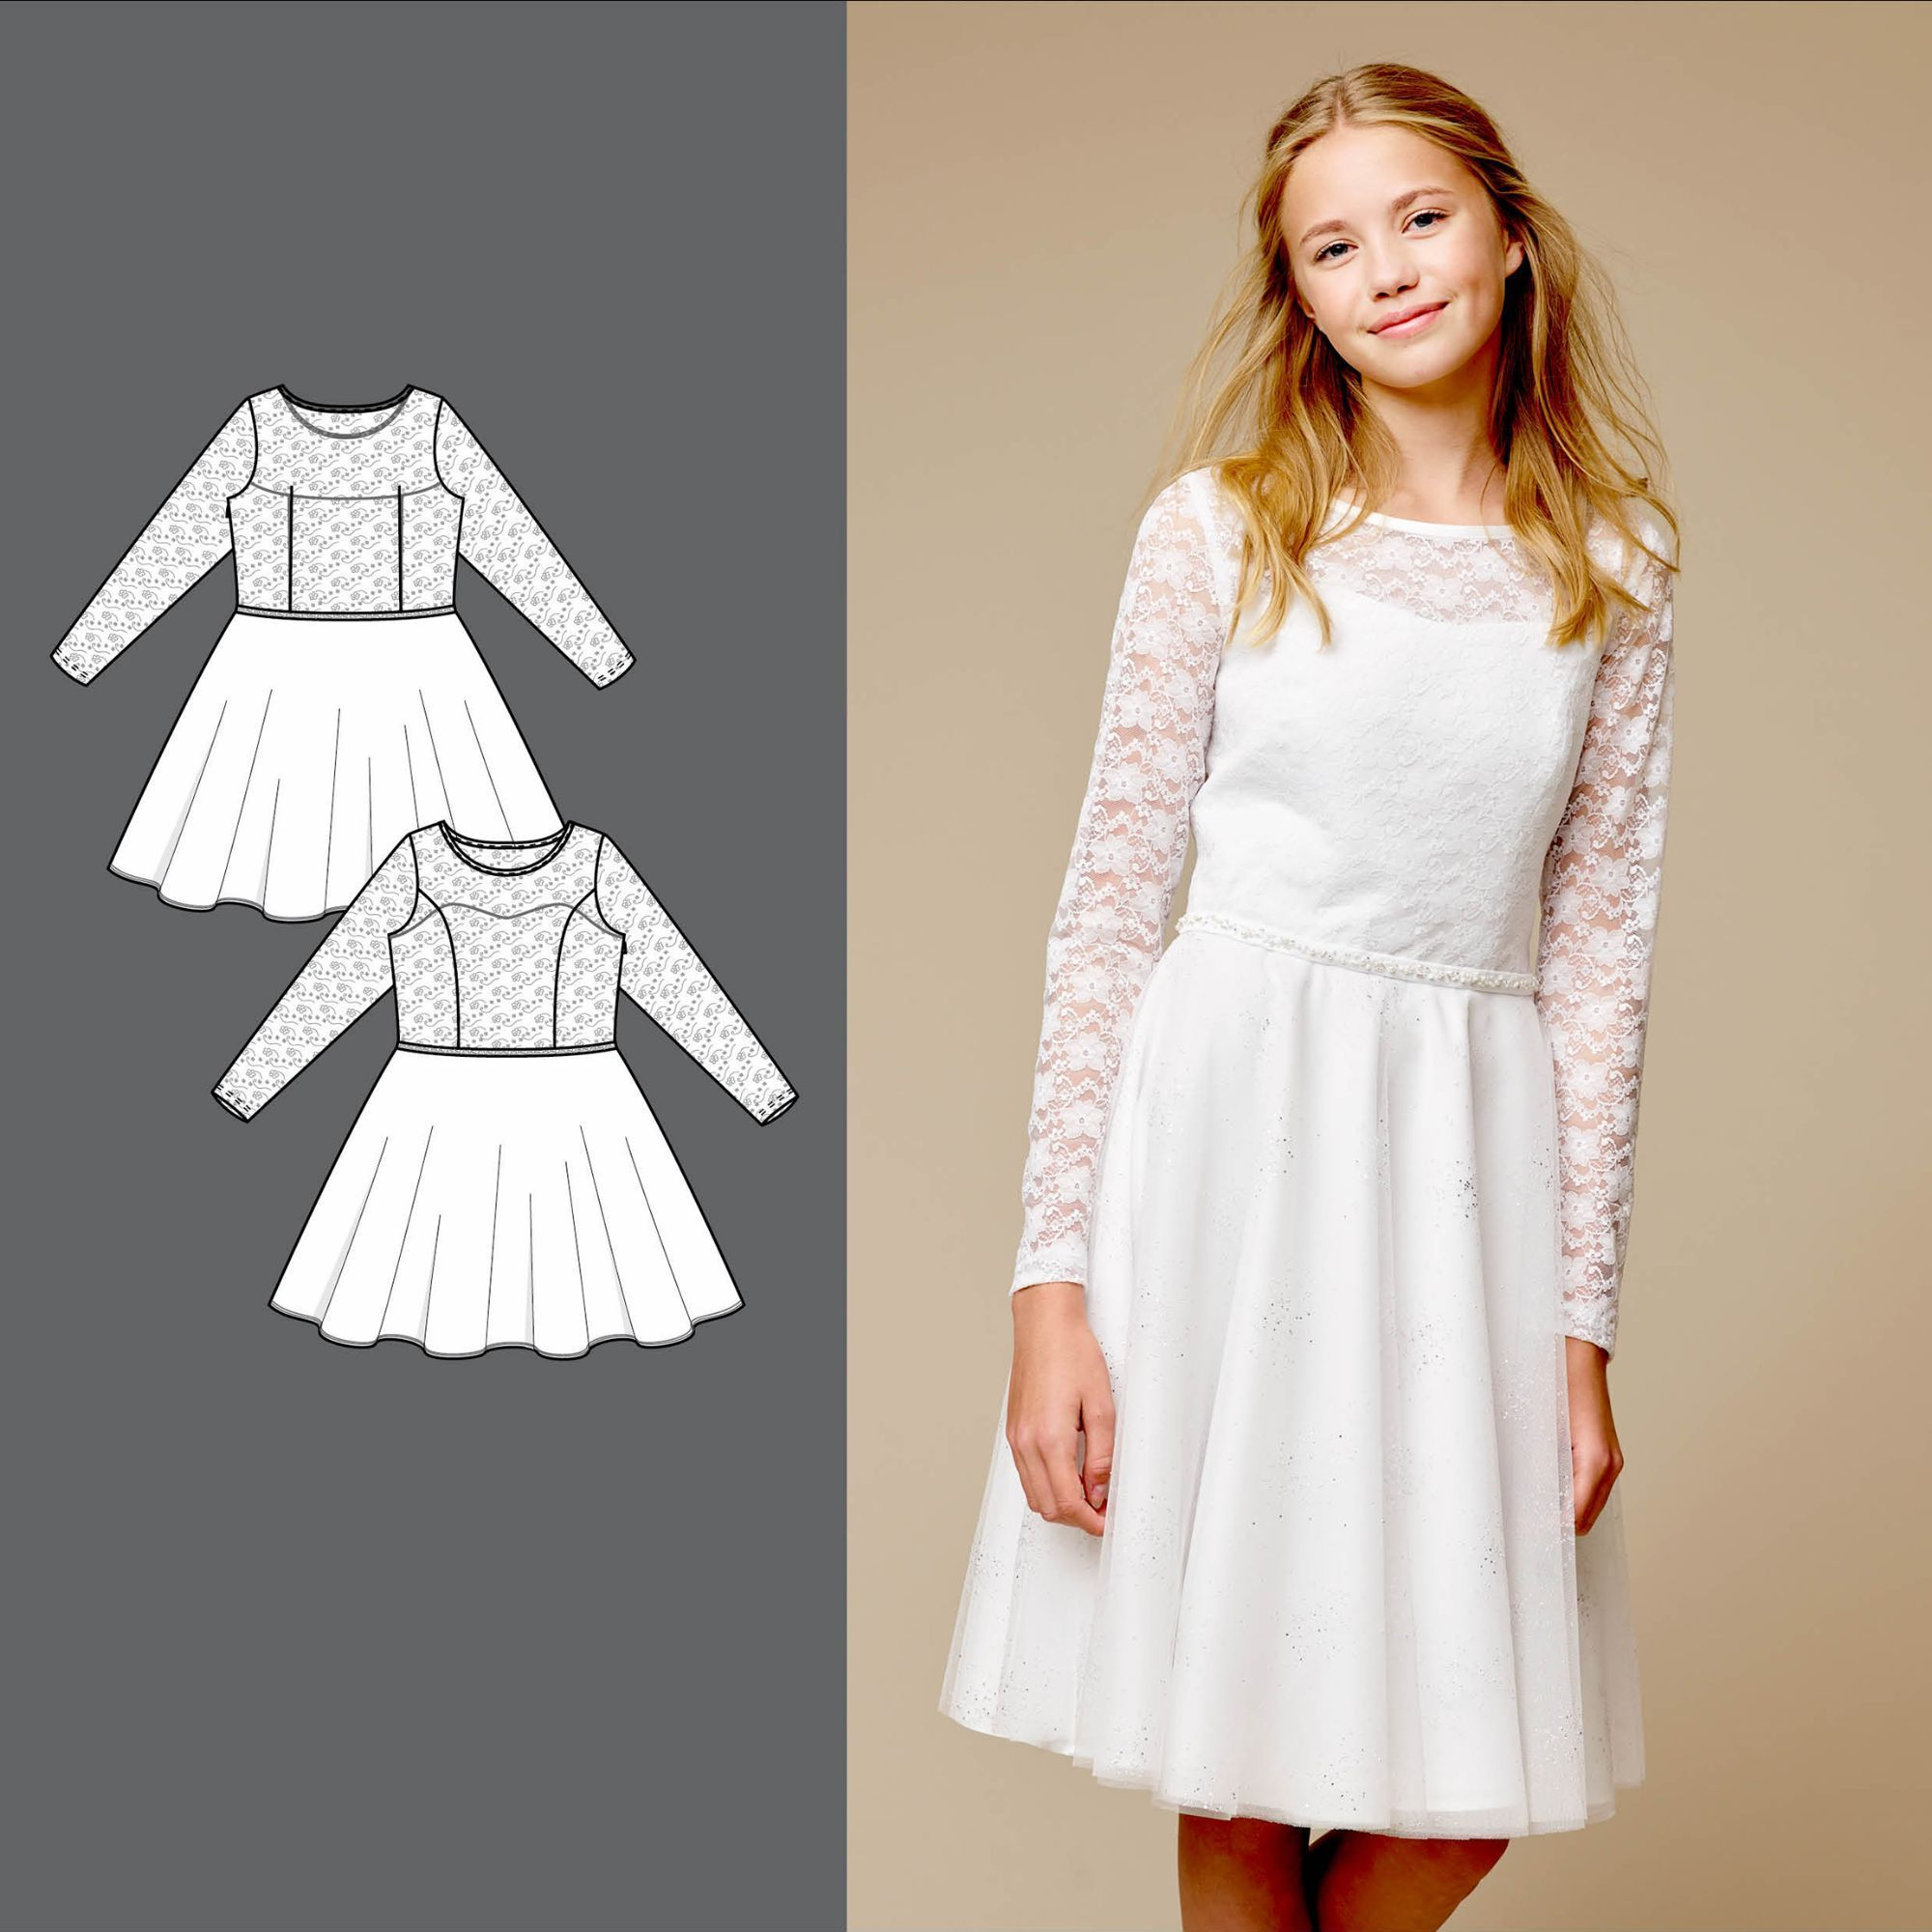 Confirmation dress - Stoff & Stil #confirmationdresses Confirmation dress - Stoff & Stil #confirmationdresses